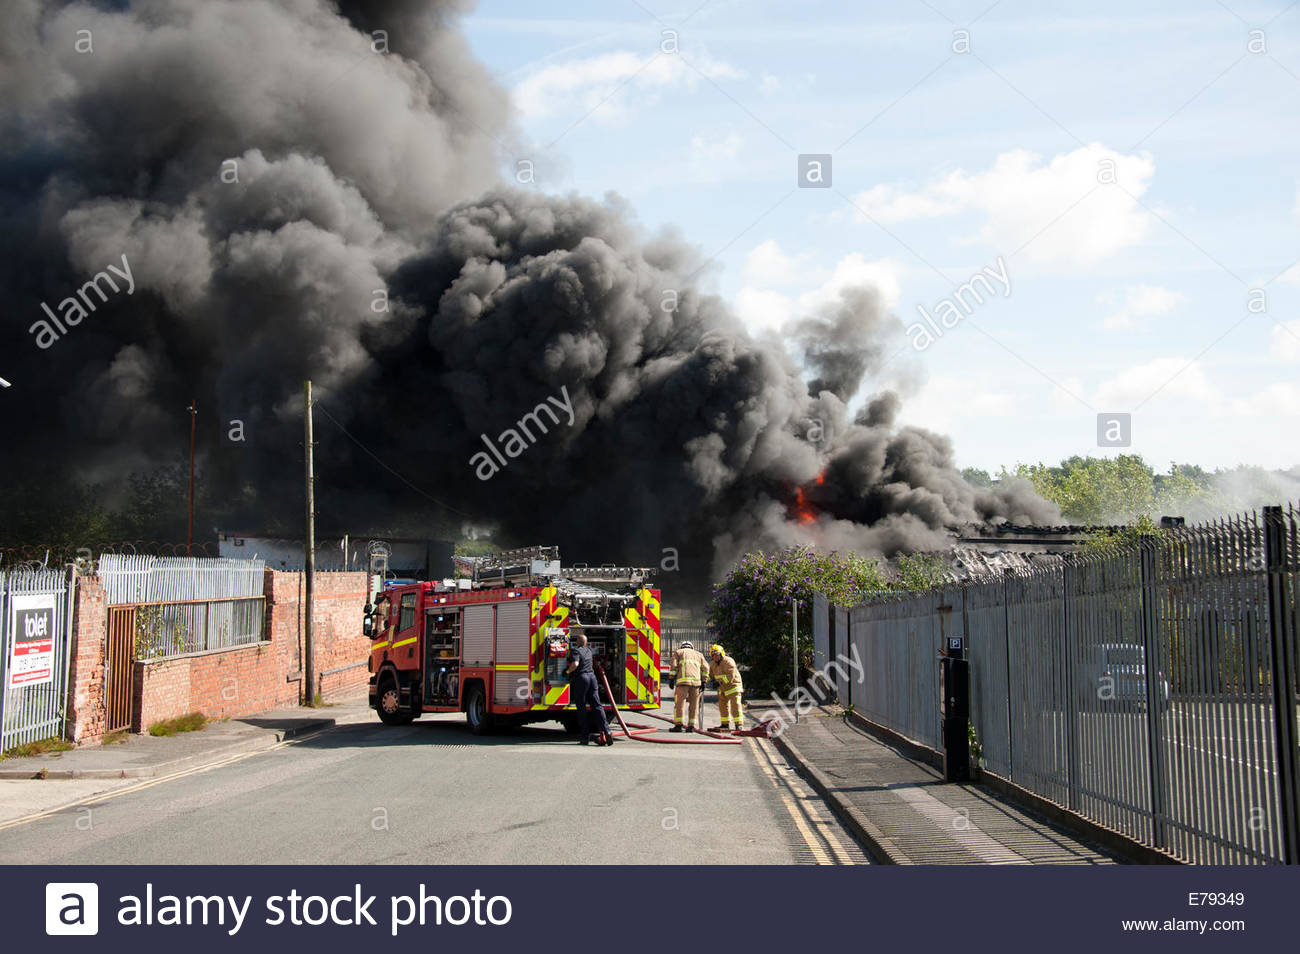 thick black smoke fire engine truck flames factory stock photo royalty  image  alamy